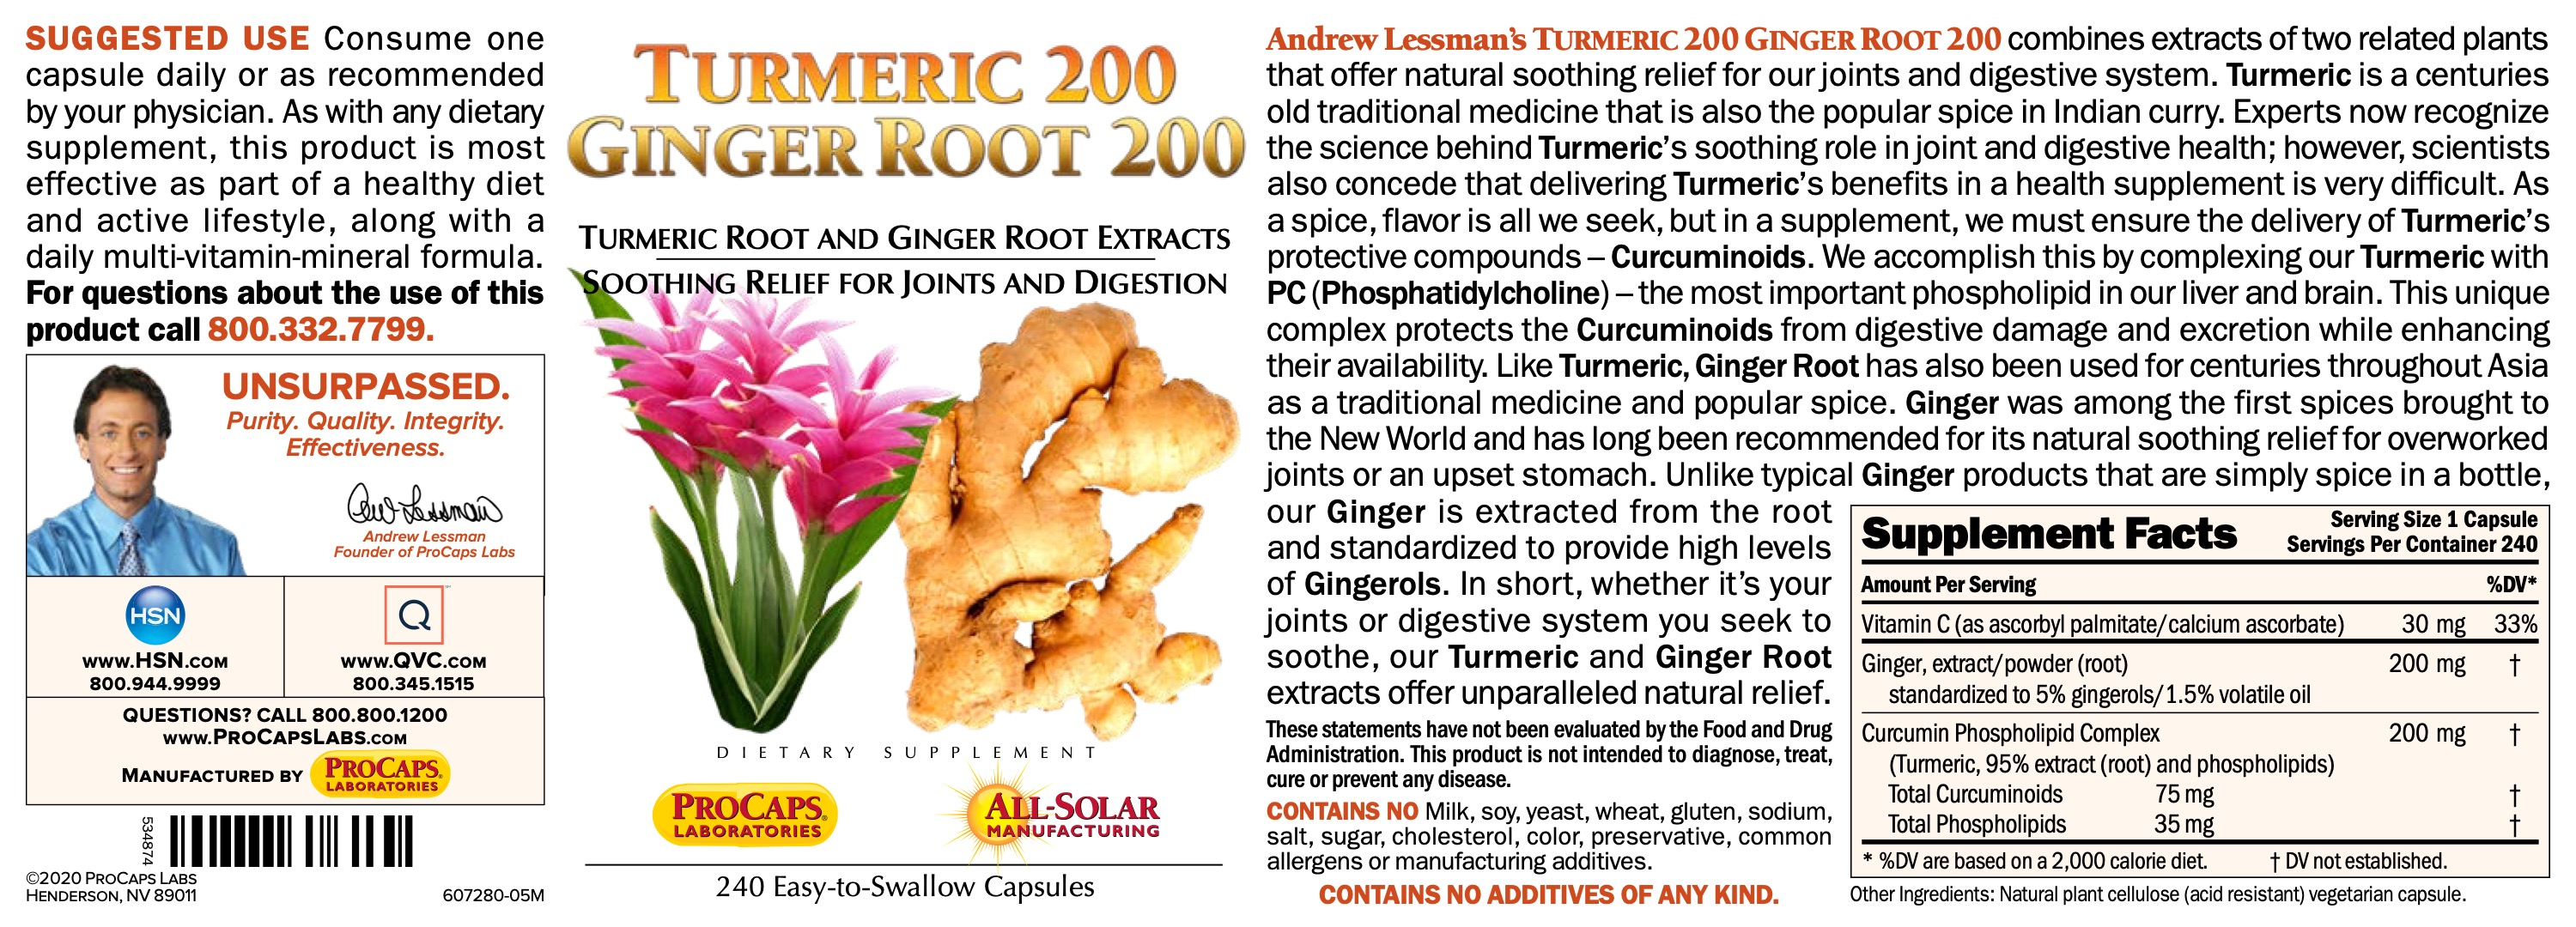 Turmeric-200-Ginger-Root-200-Capsules-Anti-oxidants